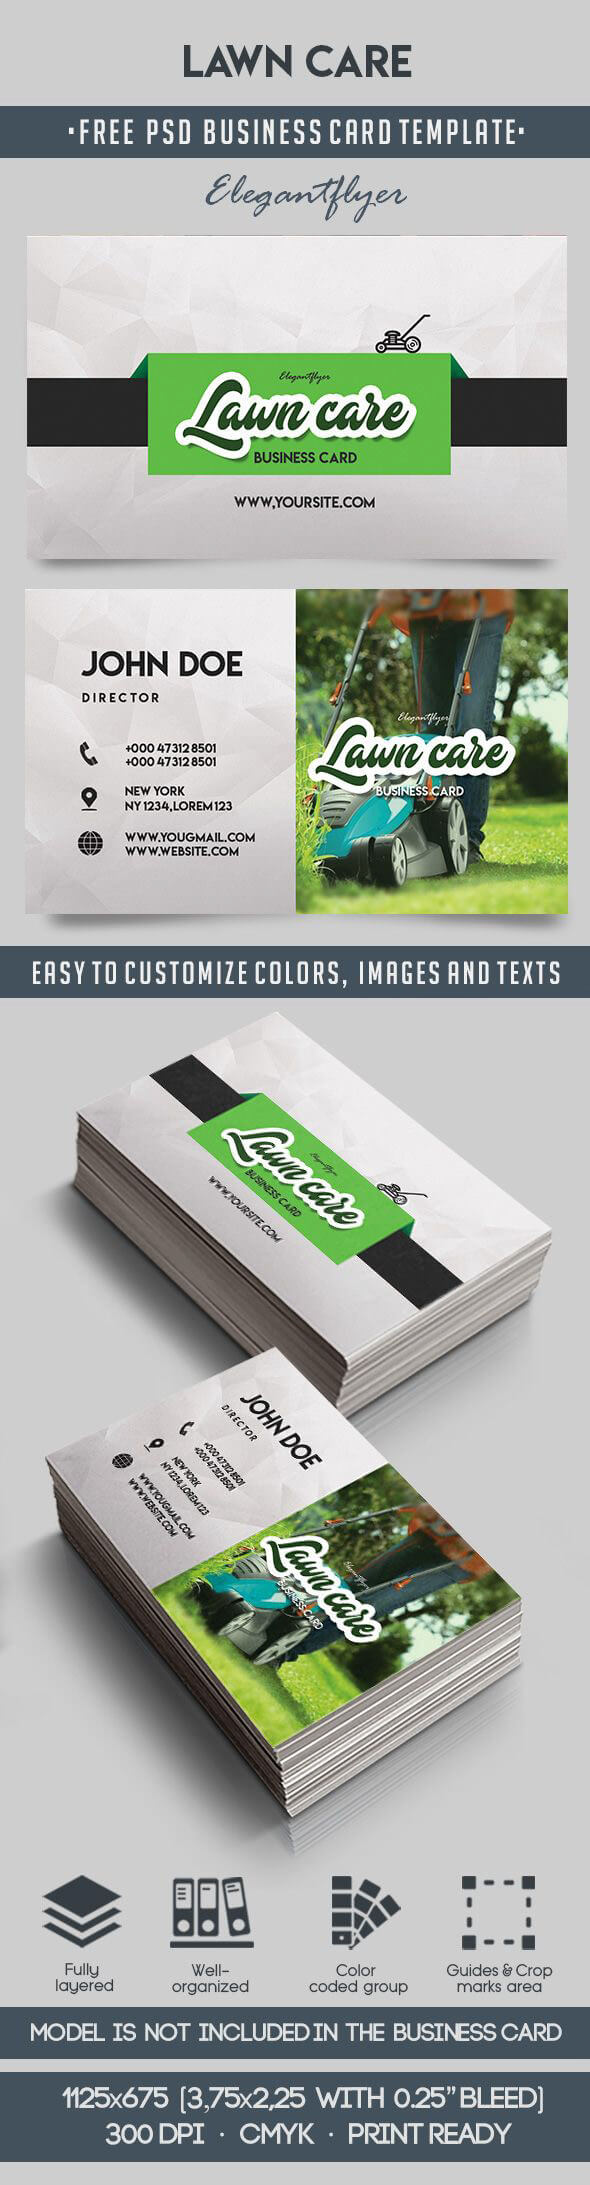 Lawn Care – Free Business Card Templates Psd On Behance Intended For Lawn Care Business Cards Templates Free